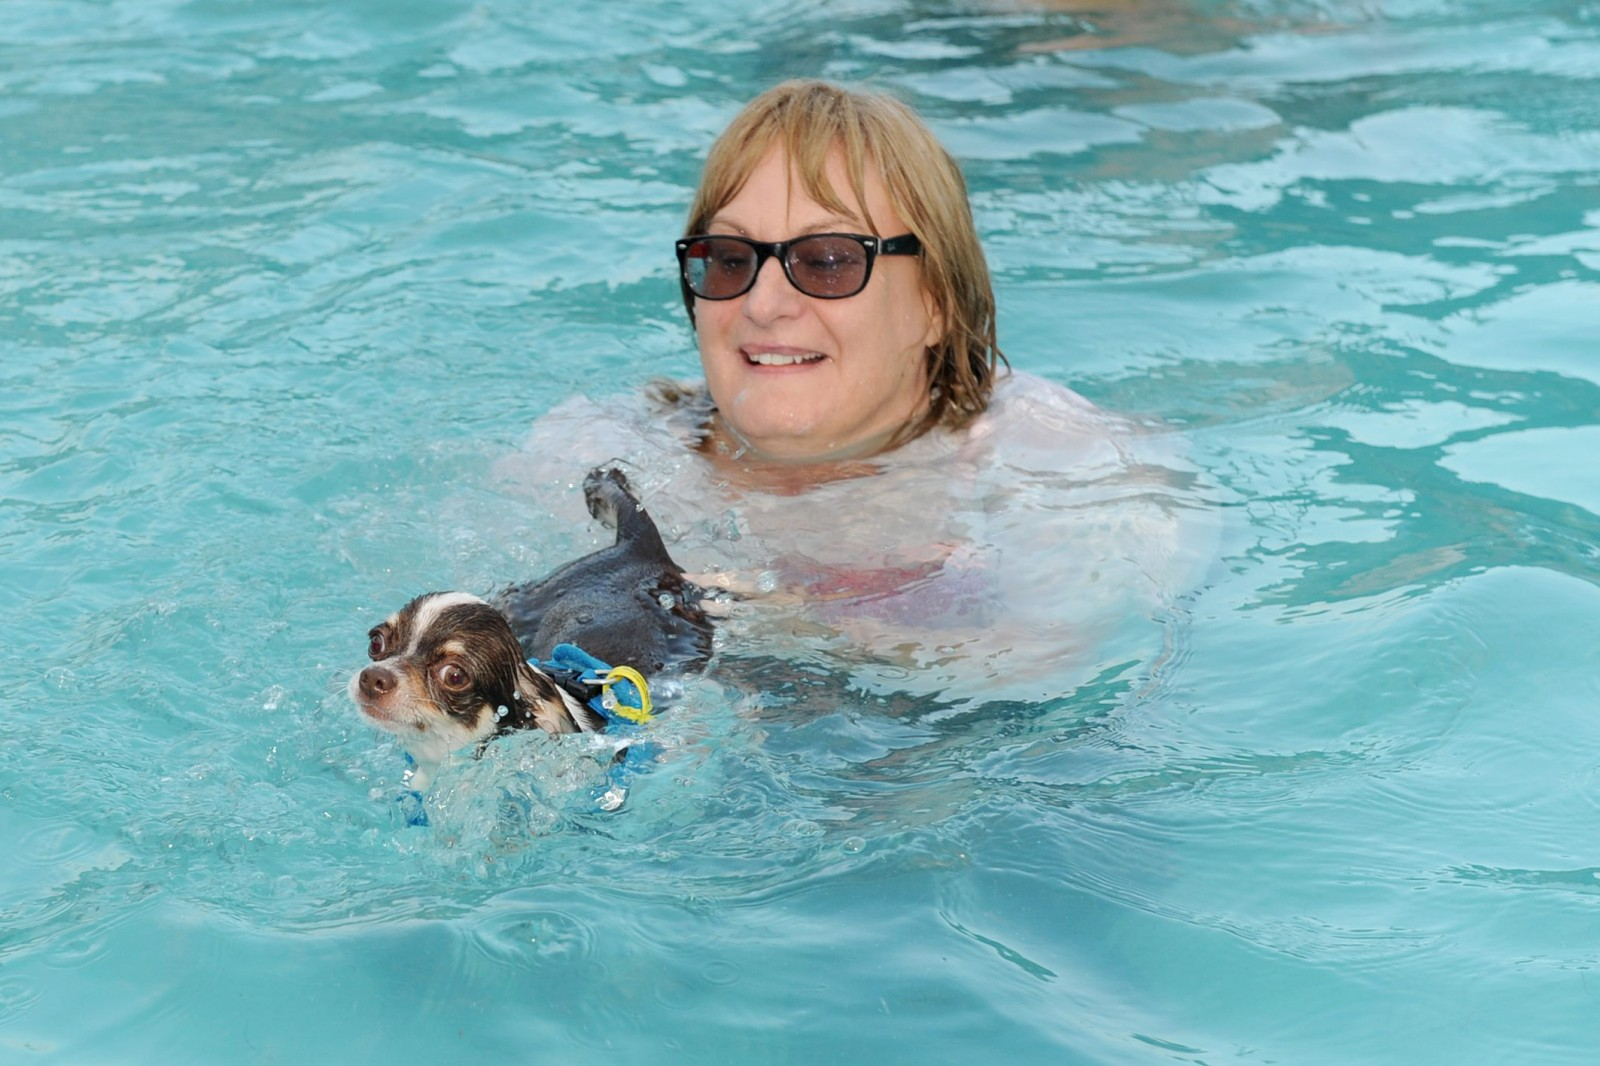 This pool is taking doggy paddle to a whole new level!